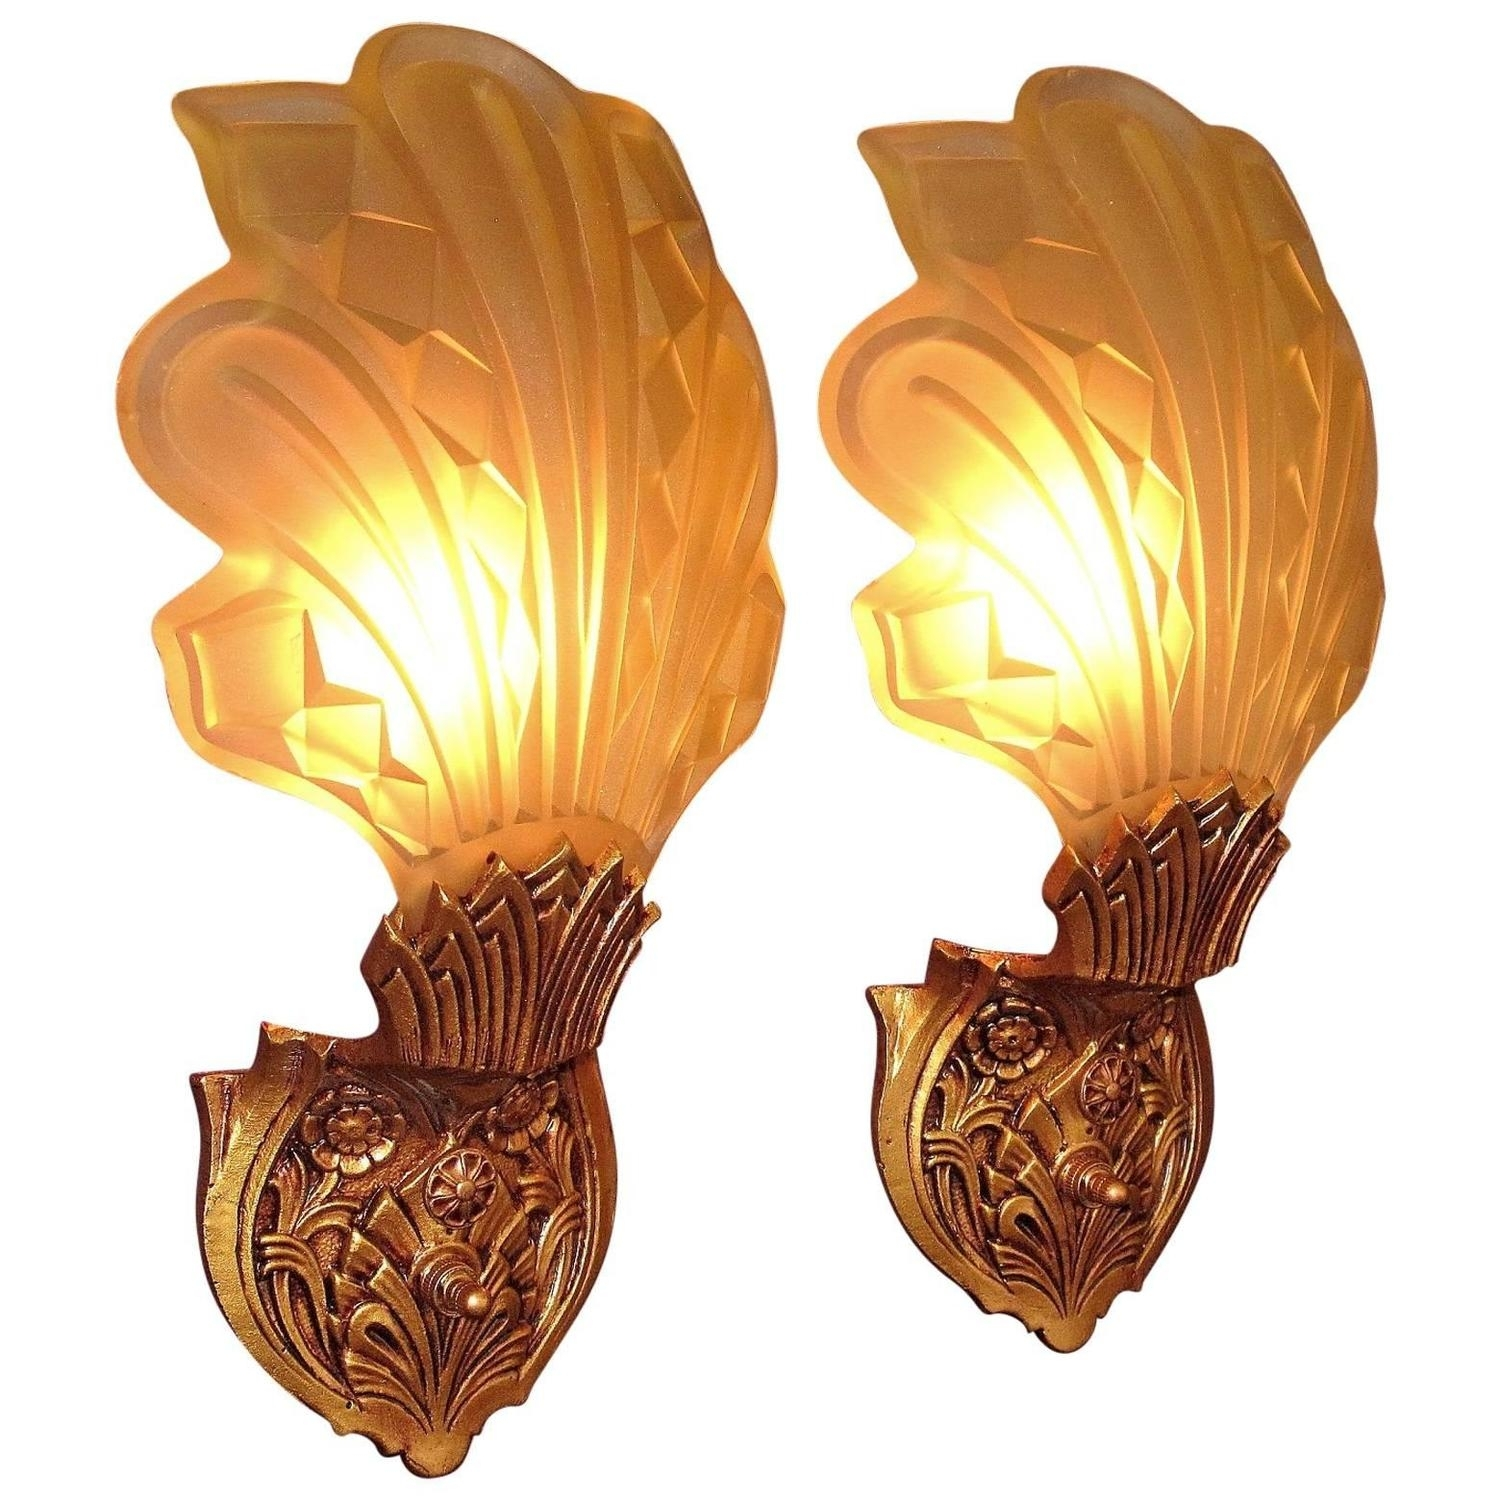 Late 1920S Early 1930S Art Deco Wall Sconces For Sale At 1Stdibs Pertaining To Latest Art Deco Wall Sconces (View 15 of 20)